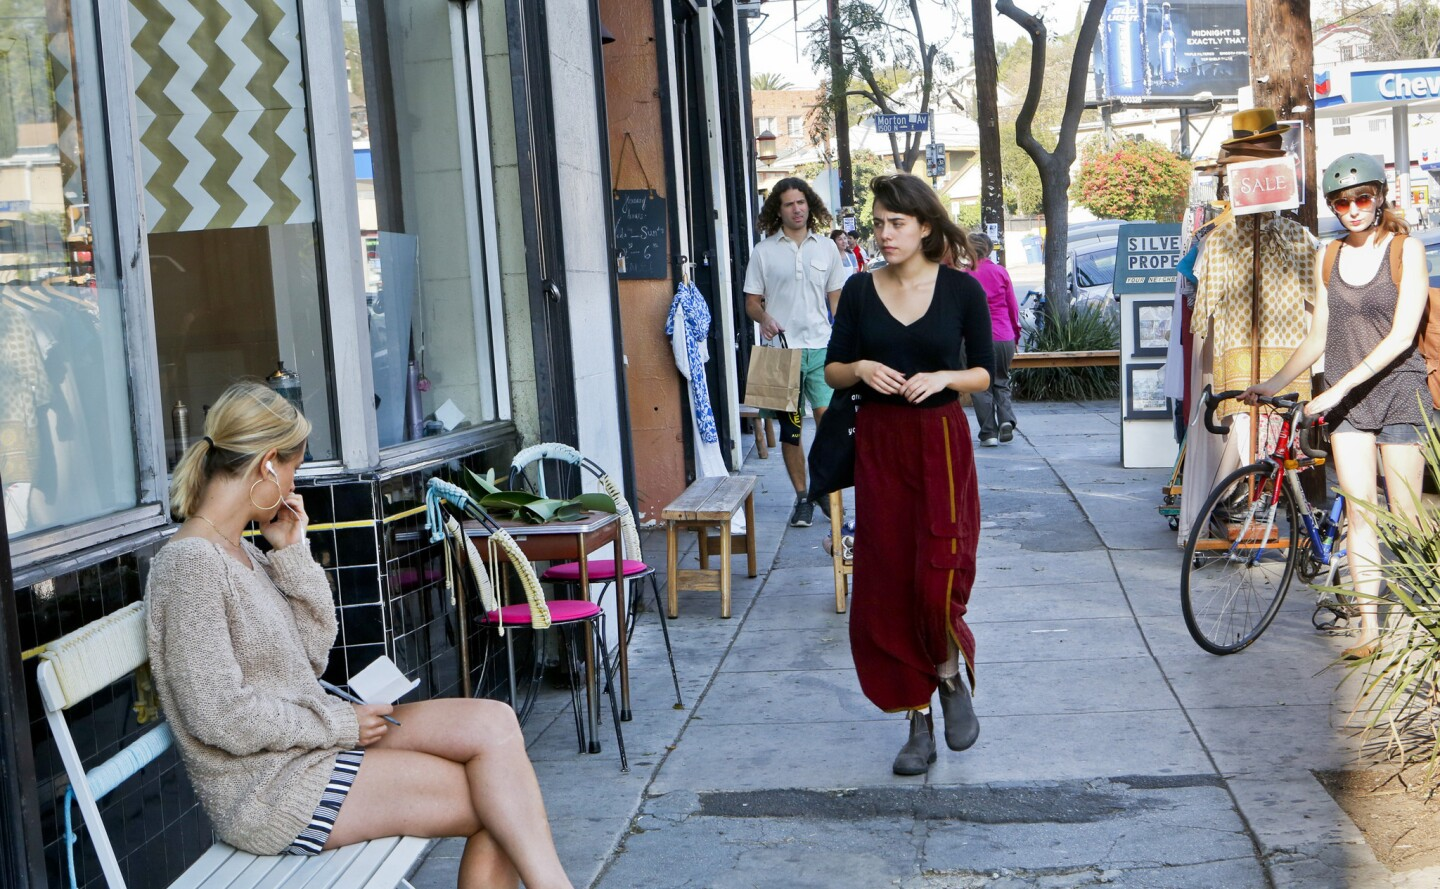 """Shoppers explore Echo Park Avenue. """"People who are attracted to Echo Park are looking for a little bit of magic,"""" said shoe designer Beatrice Valenzuela. """"They want something exciting, not perfect or pristine."""""""